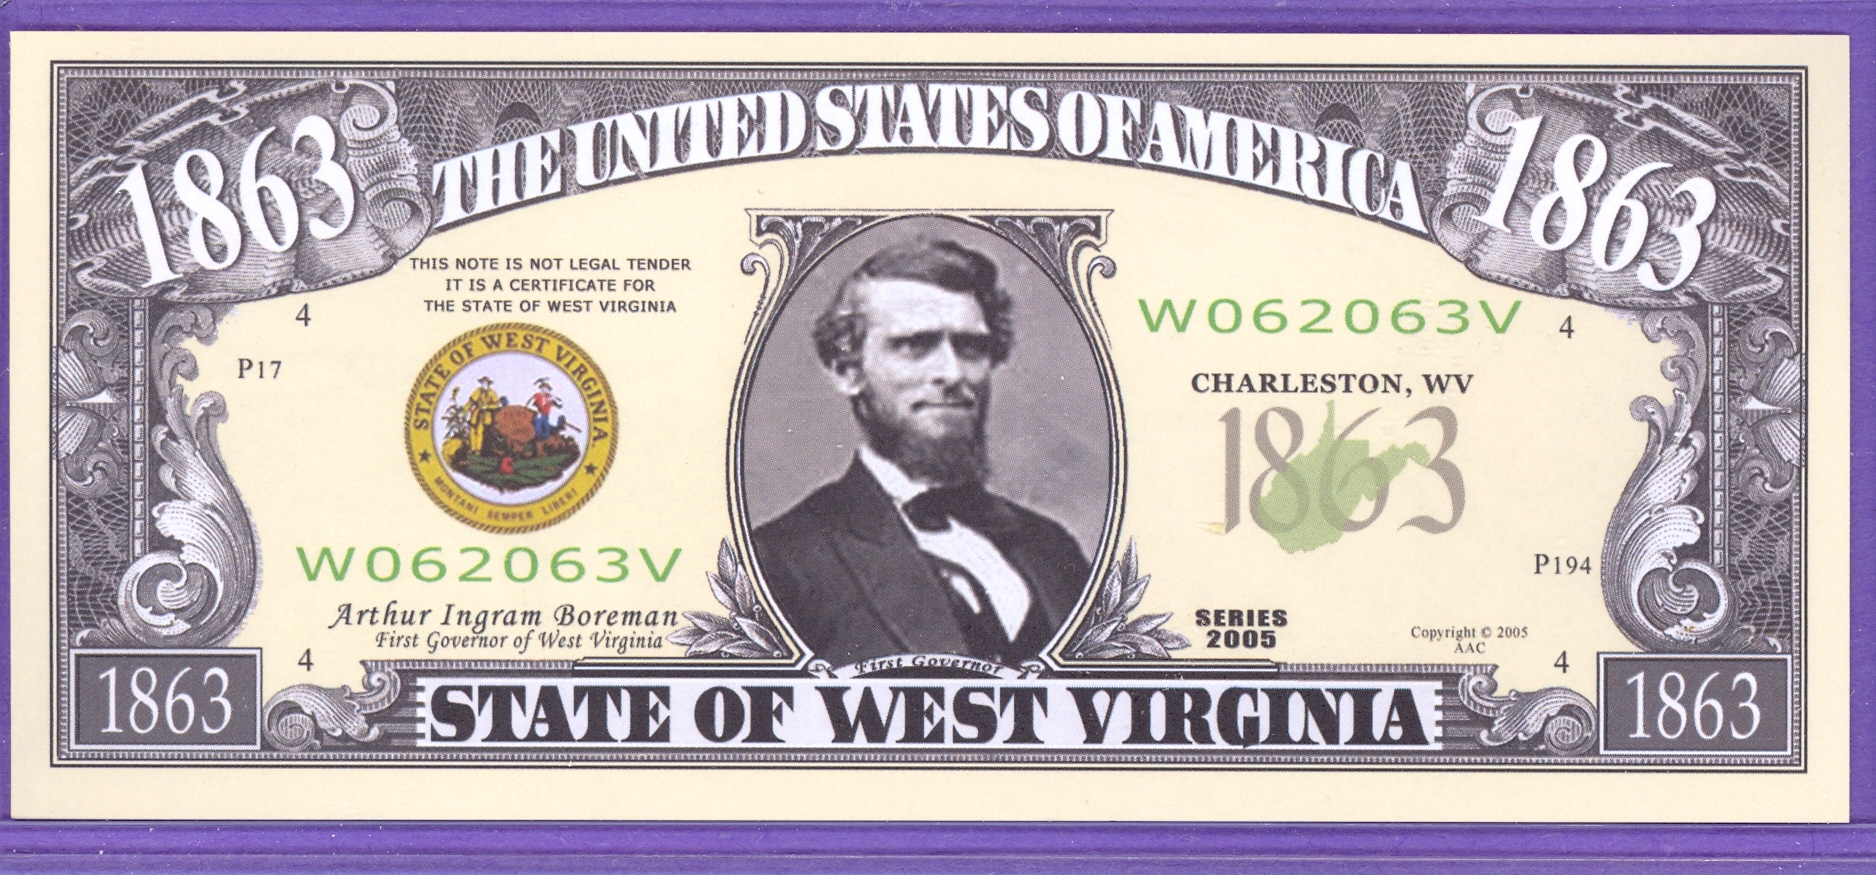 State of West Virginia Novelty or Fantasy Note